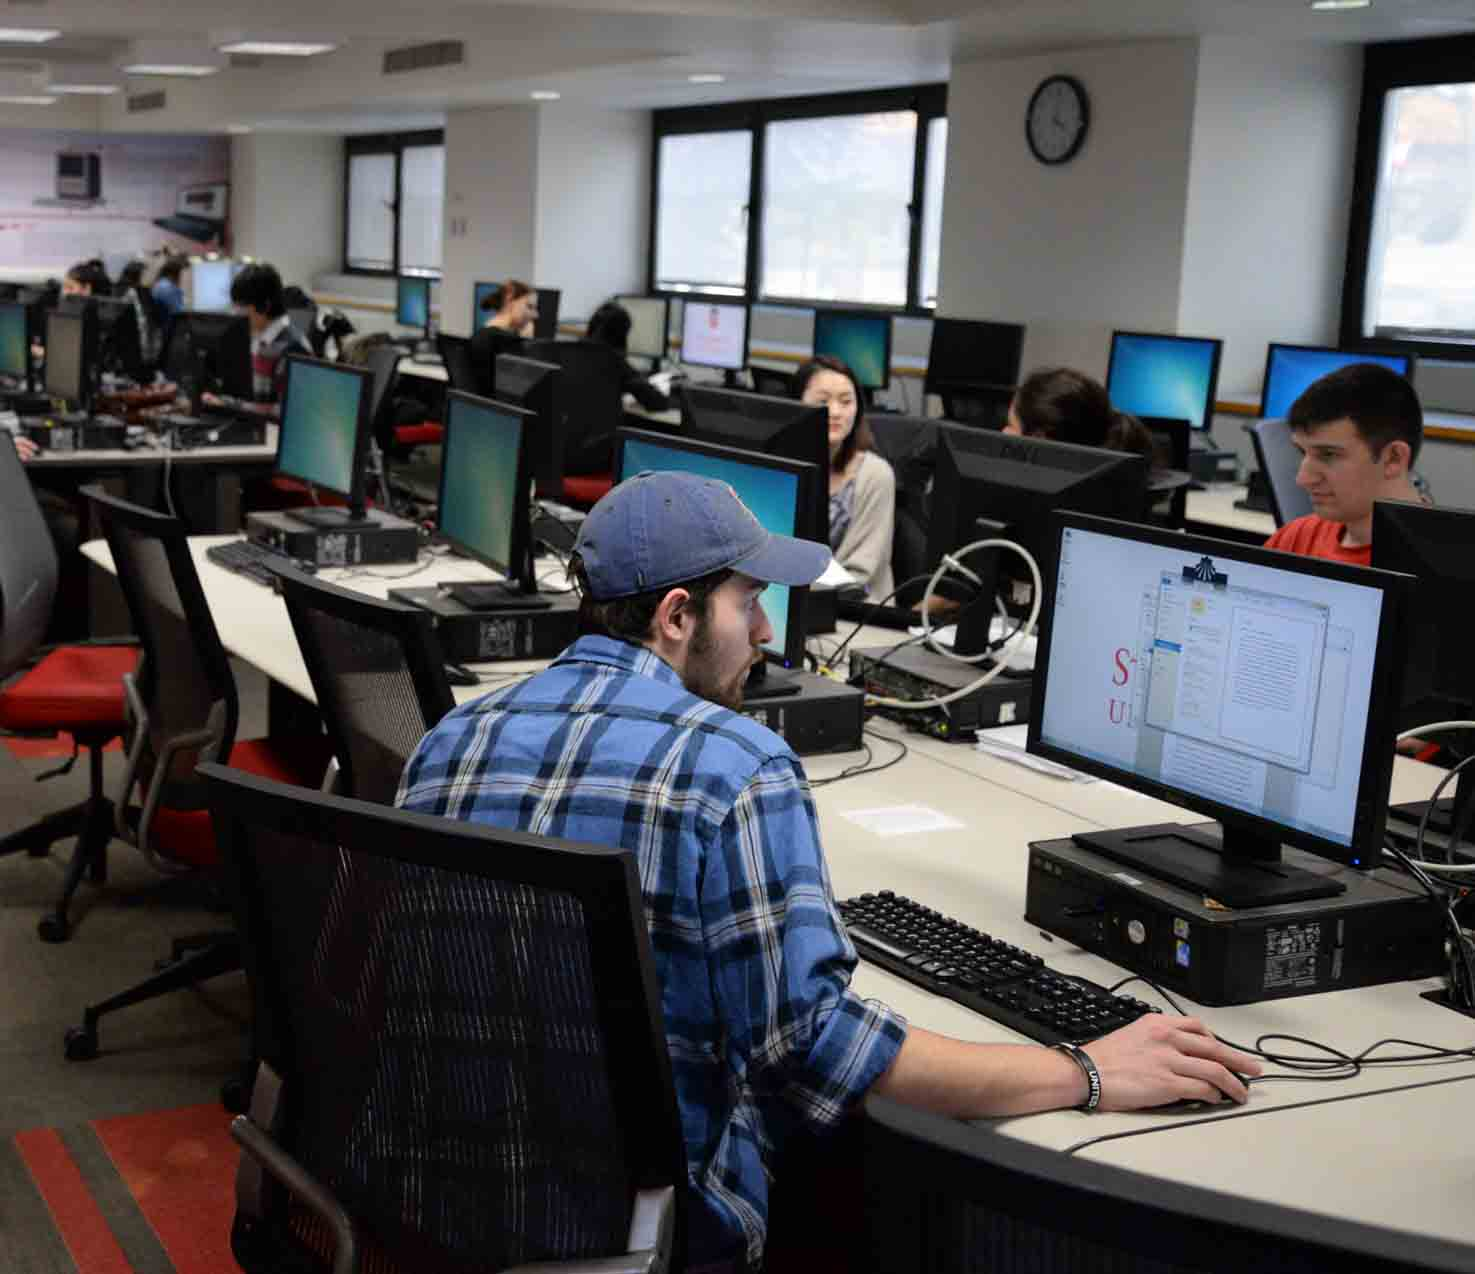 University warns students of possible cyber threats.